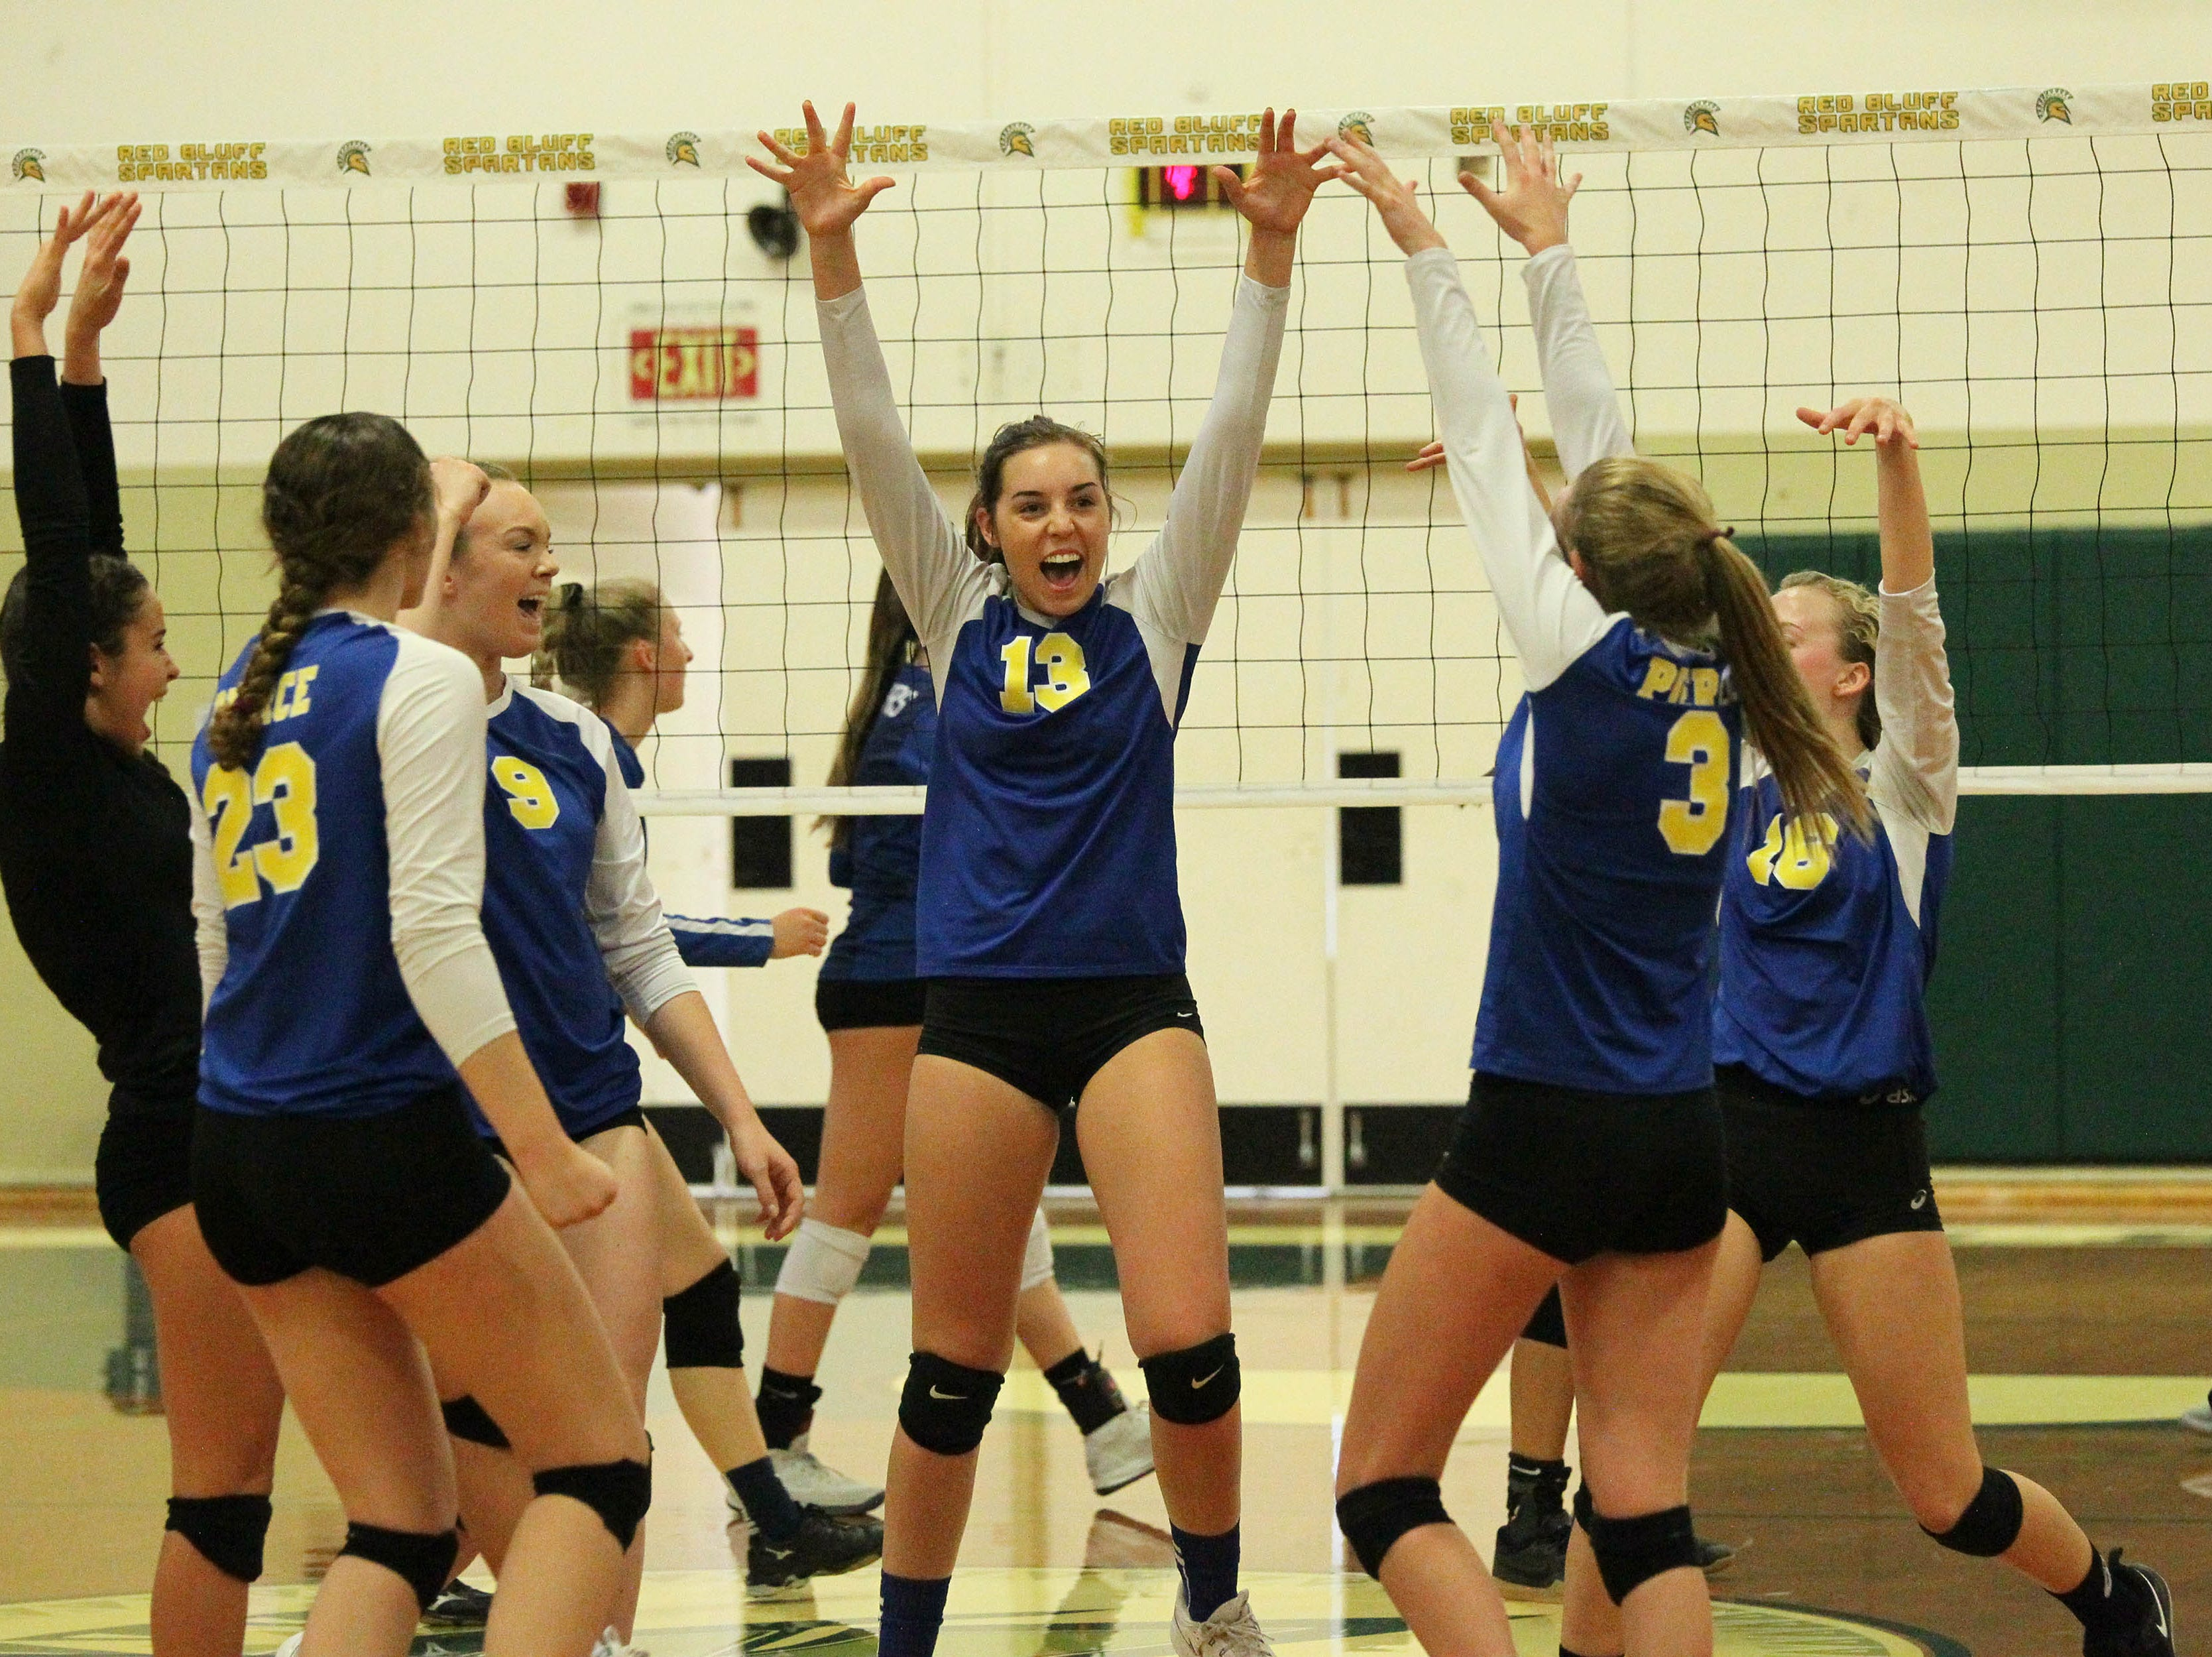 Pierce junior Halle Charter (13) celebrates a point in the Division IV Northern Section volleyball championship on Saturday, Nov. 3. Pierce won the match in three sets over U-Prep, 25-23, 25-21, 25-22.